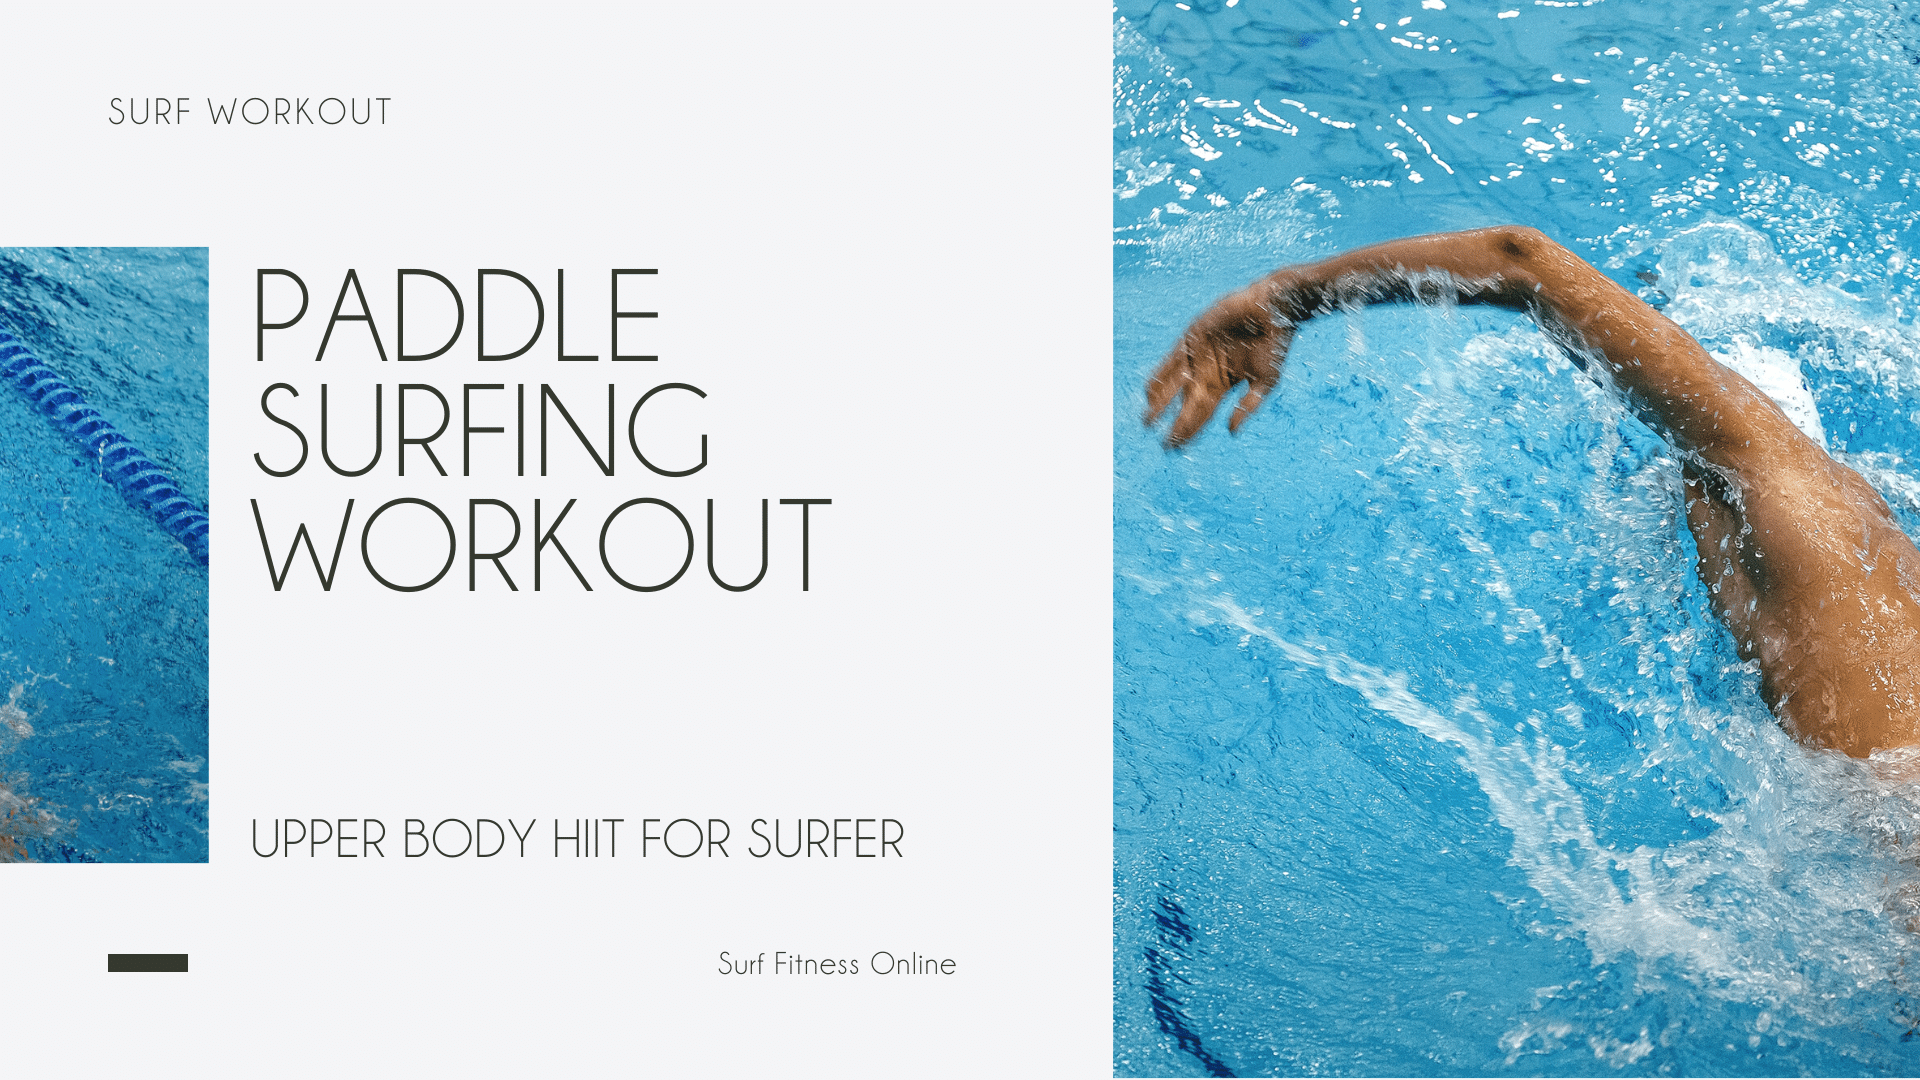 Paddle Surfing Workout Upper Body HIIT for Surfer